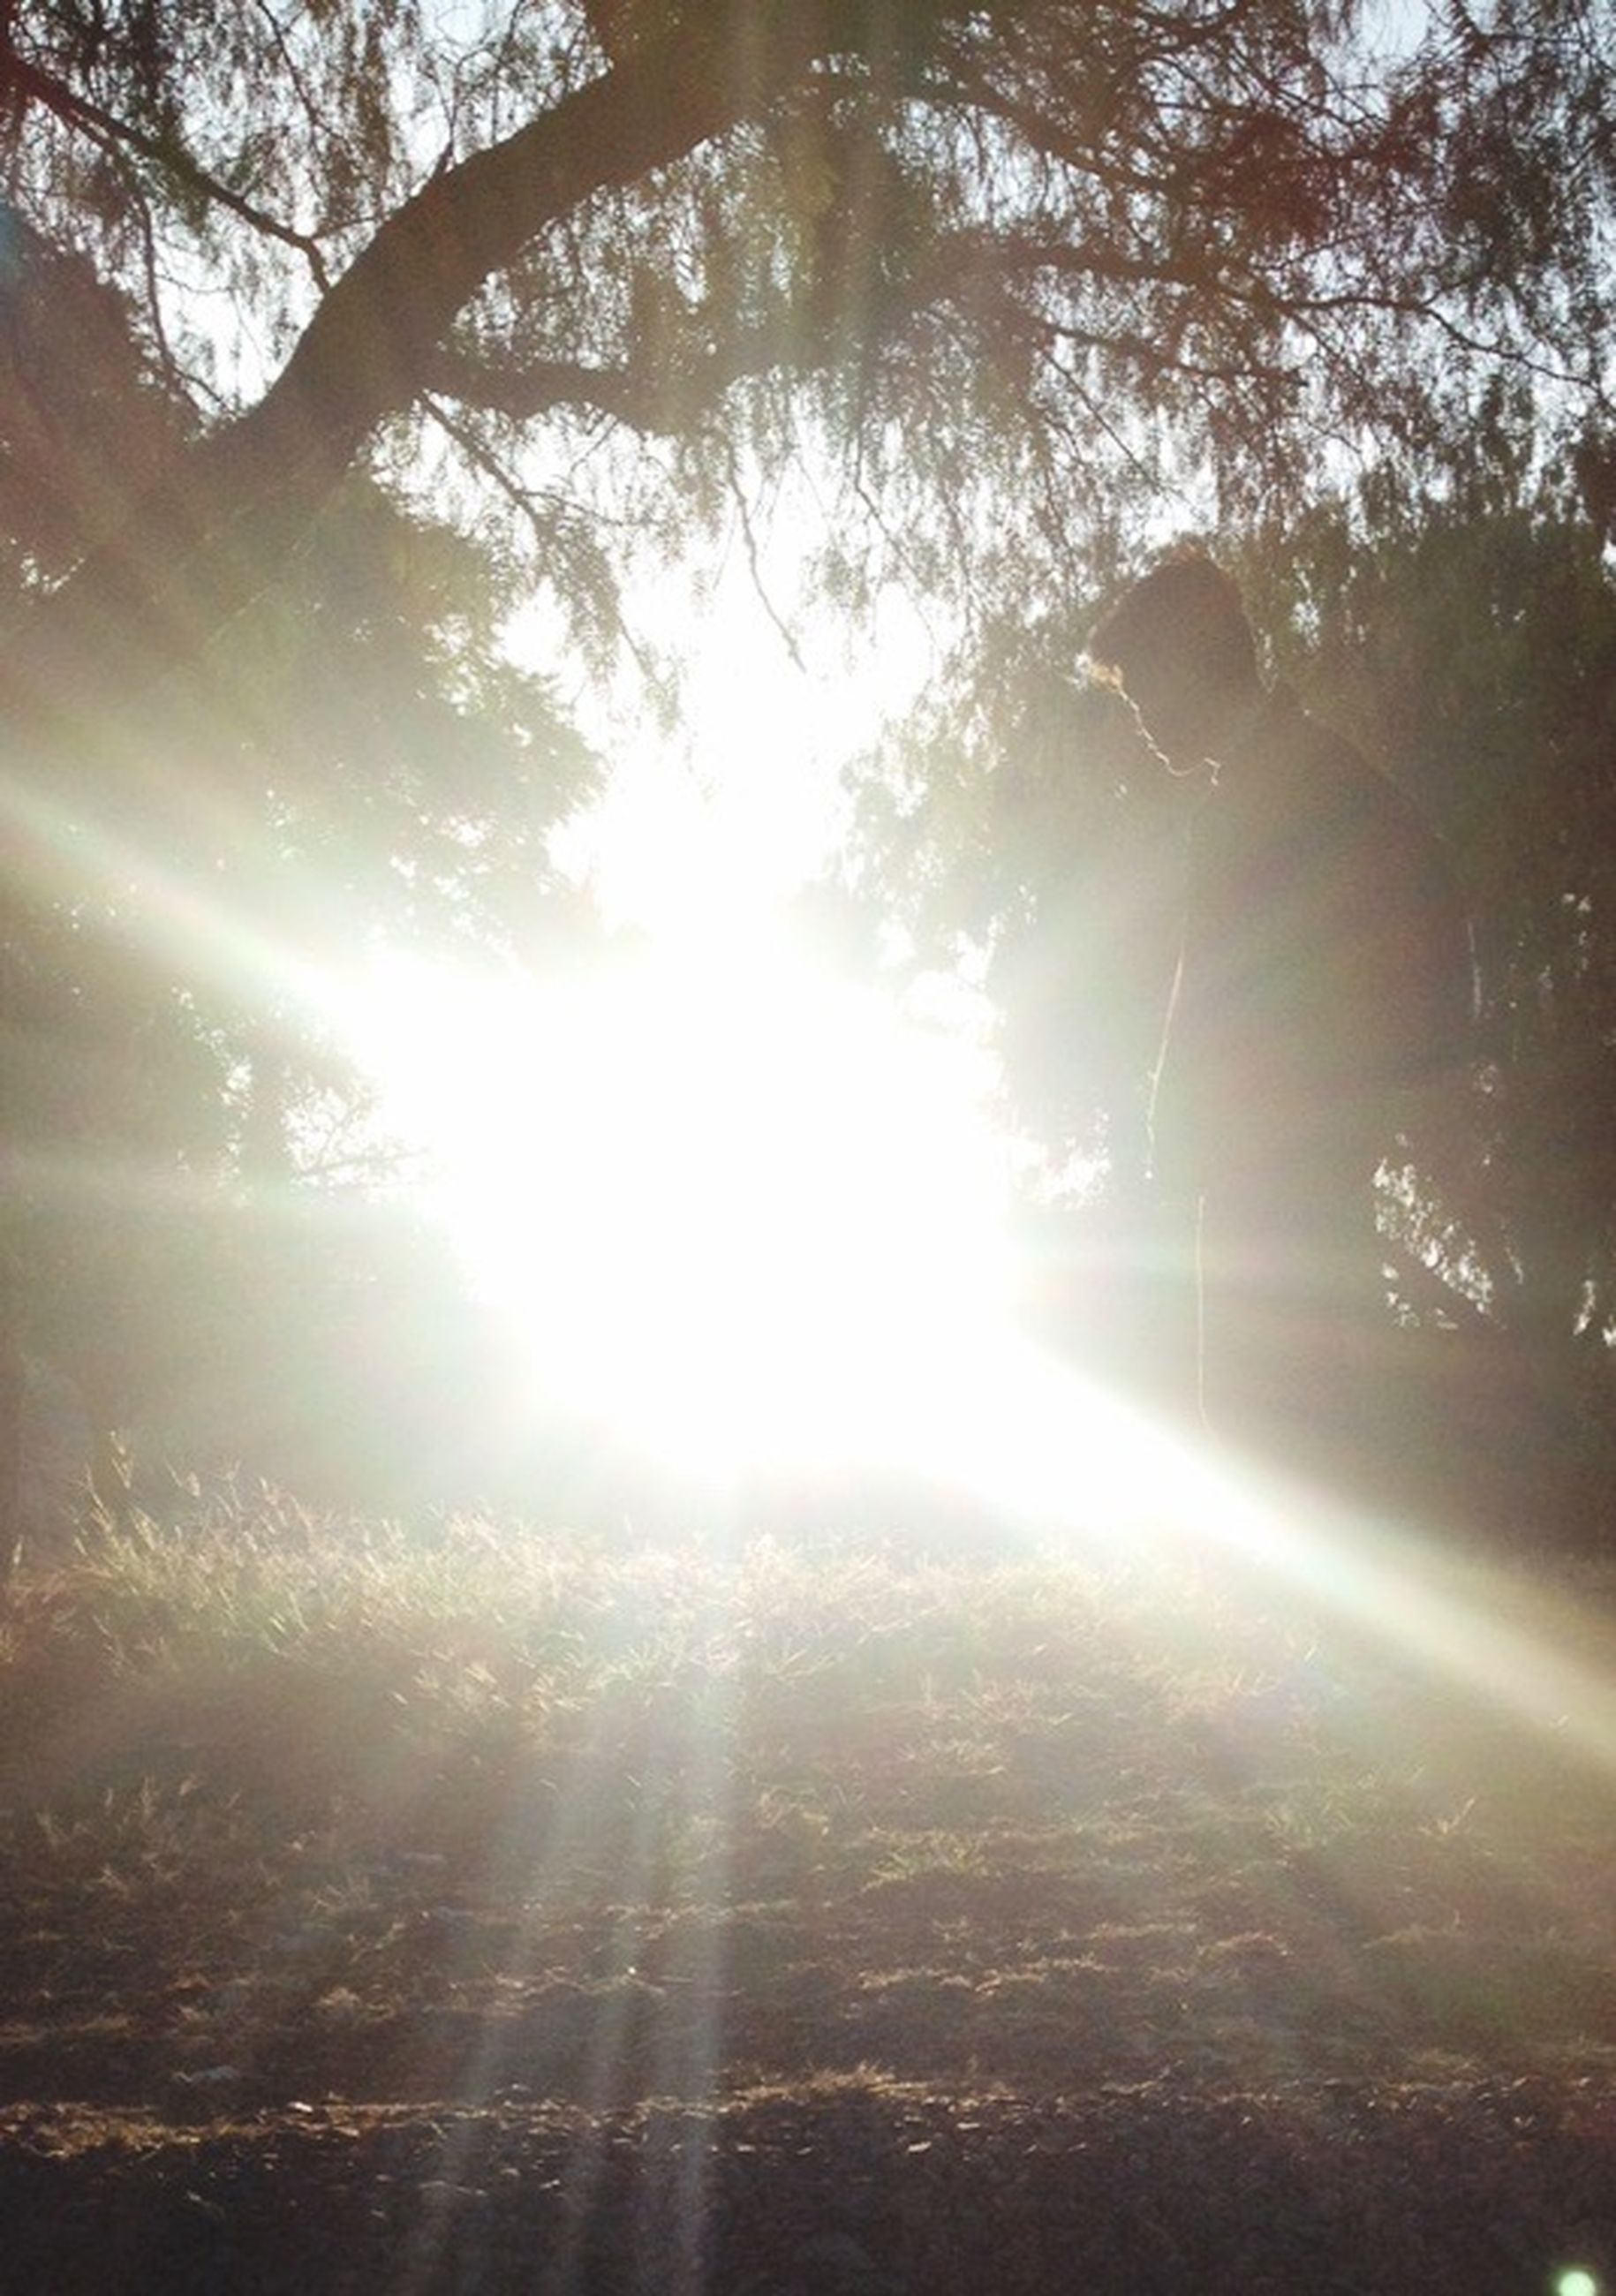 sun, sunbeam, lens flare, sunlight, tree, bright, tranquility, sunny, beauty in nature, nature, tranquil scene, scenics, streaming, back lit, growth, forest, shiny, low angle view, idyllic, outdoors